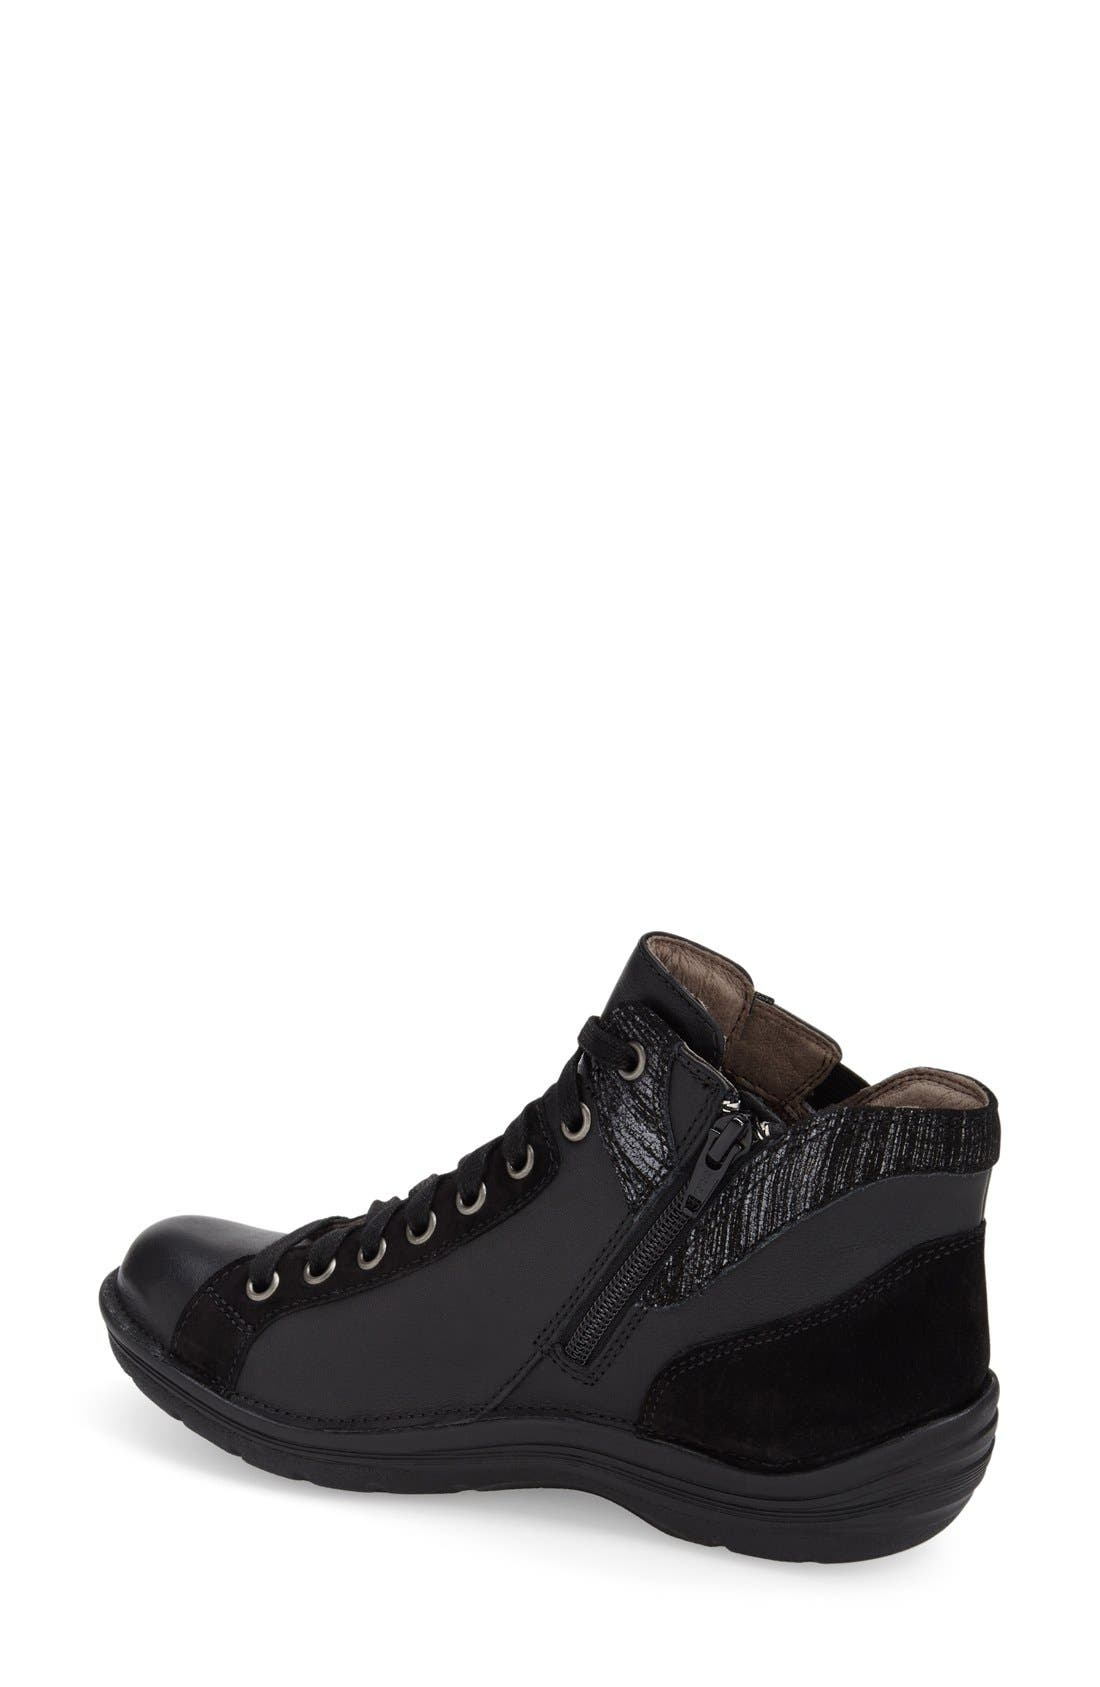 'Orbit' Boot,                             Alternate thumbnail 2, color,                             Black/ Anthracite Leather